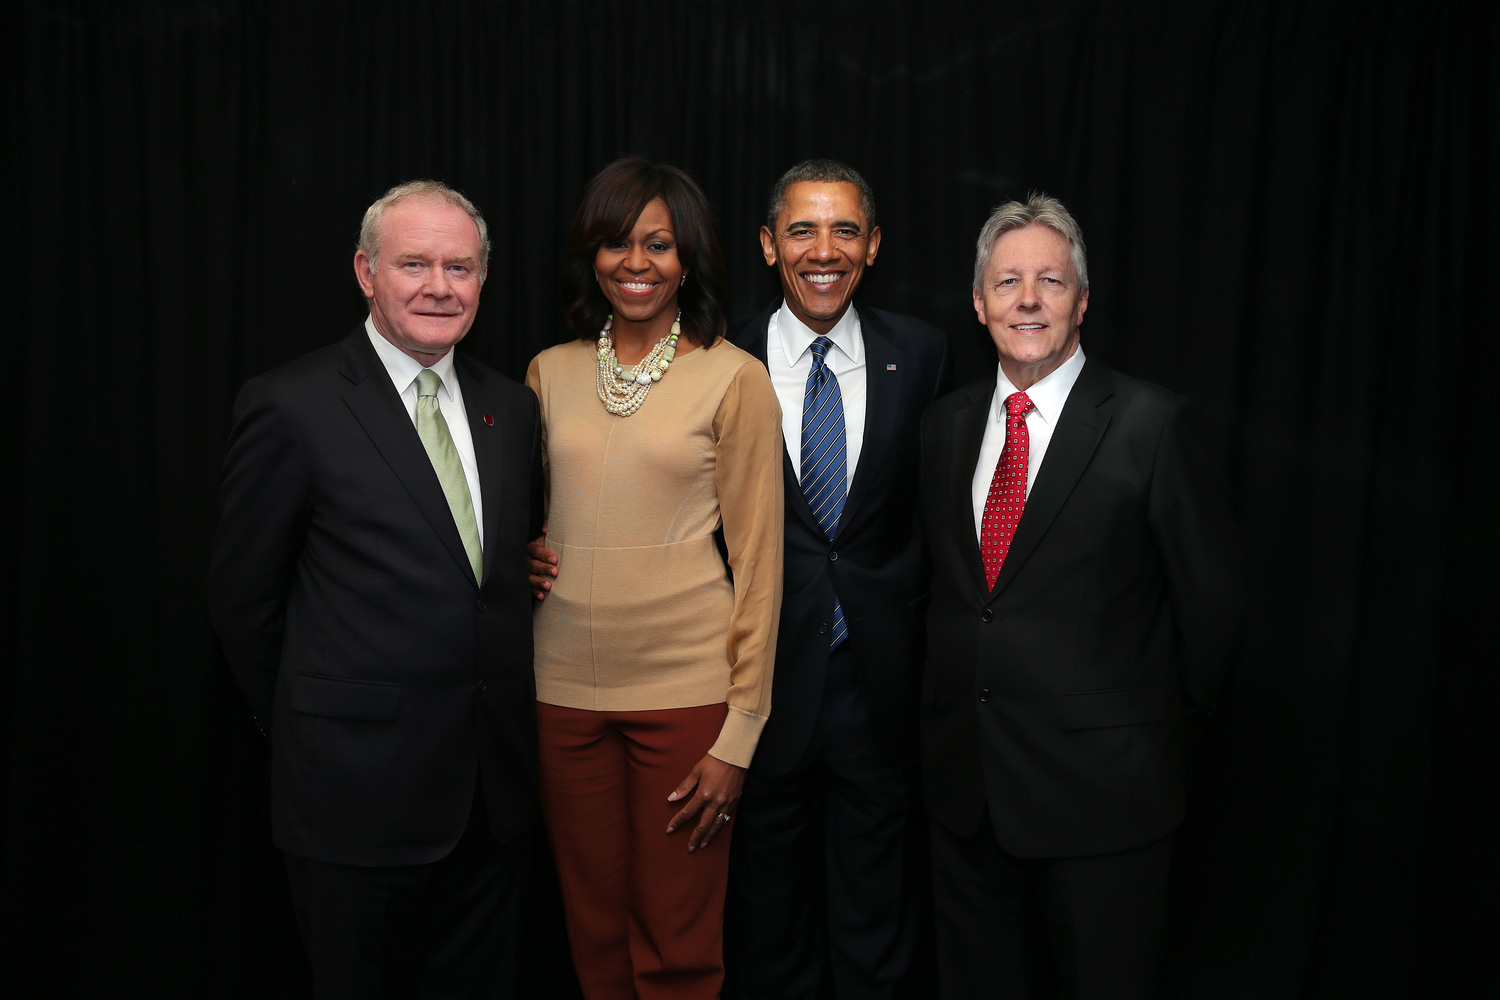 Barack and Michelle Obama meet Martin McGuinness and Peter Robinson